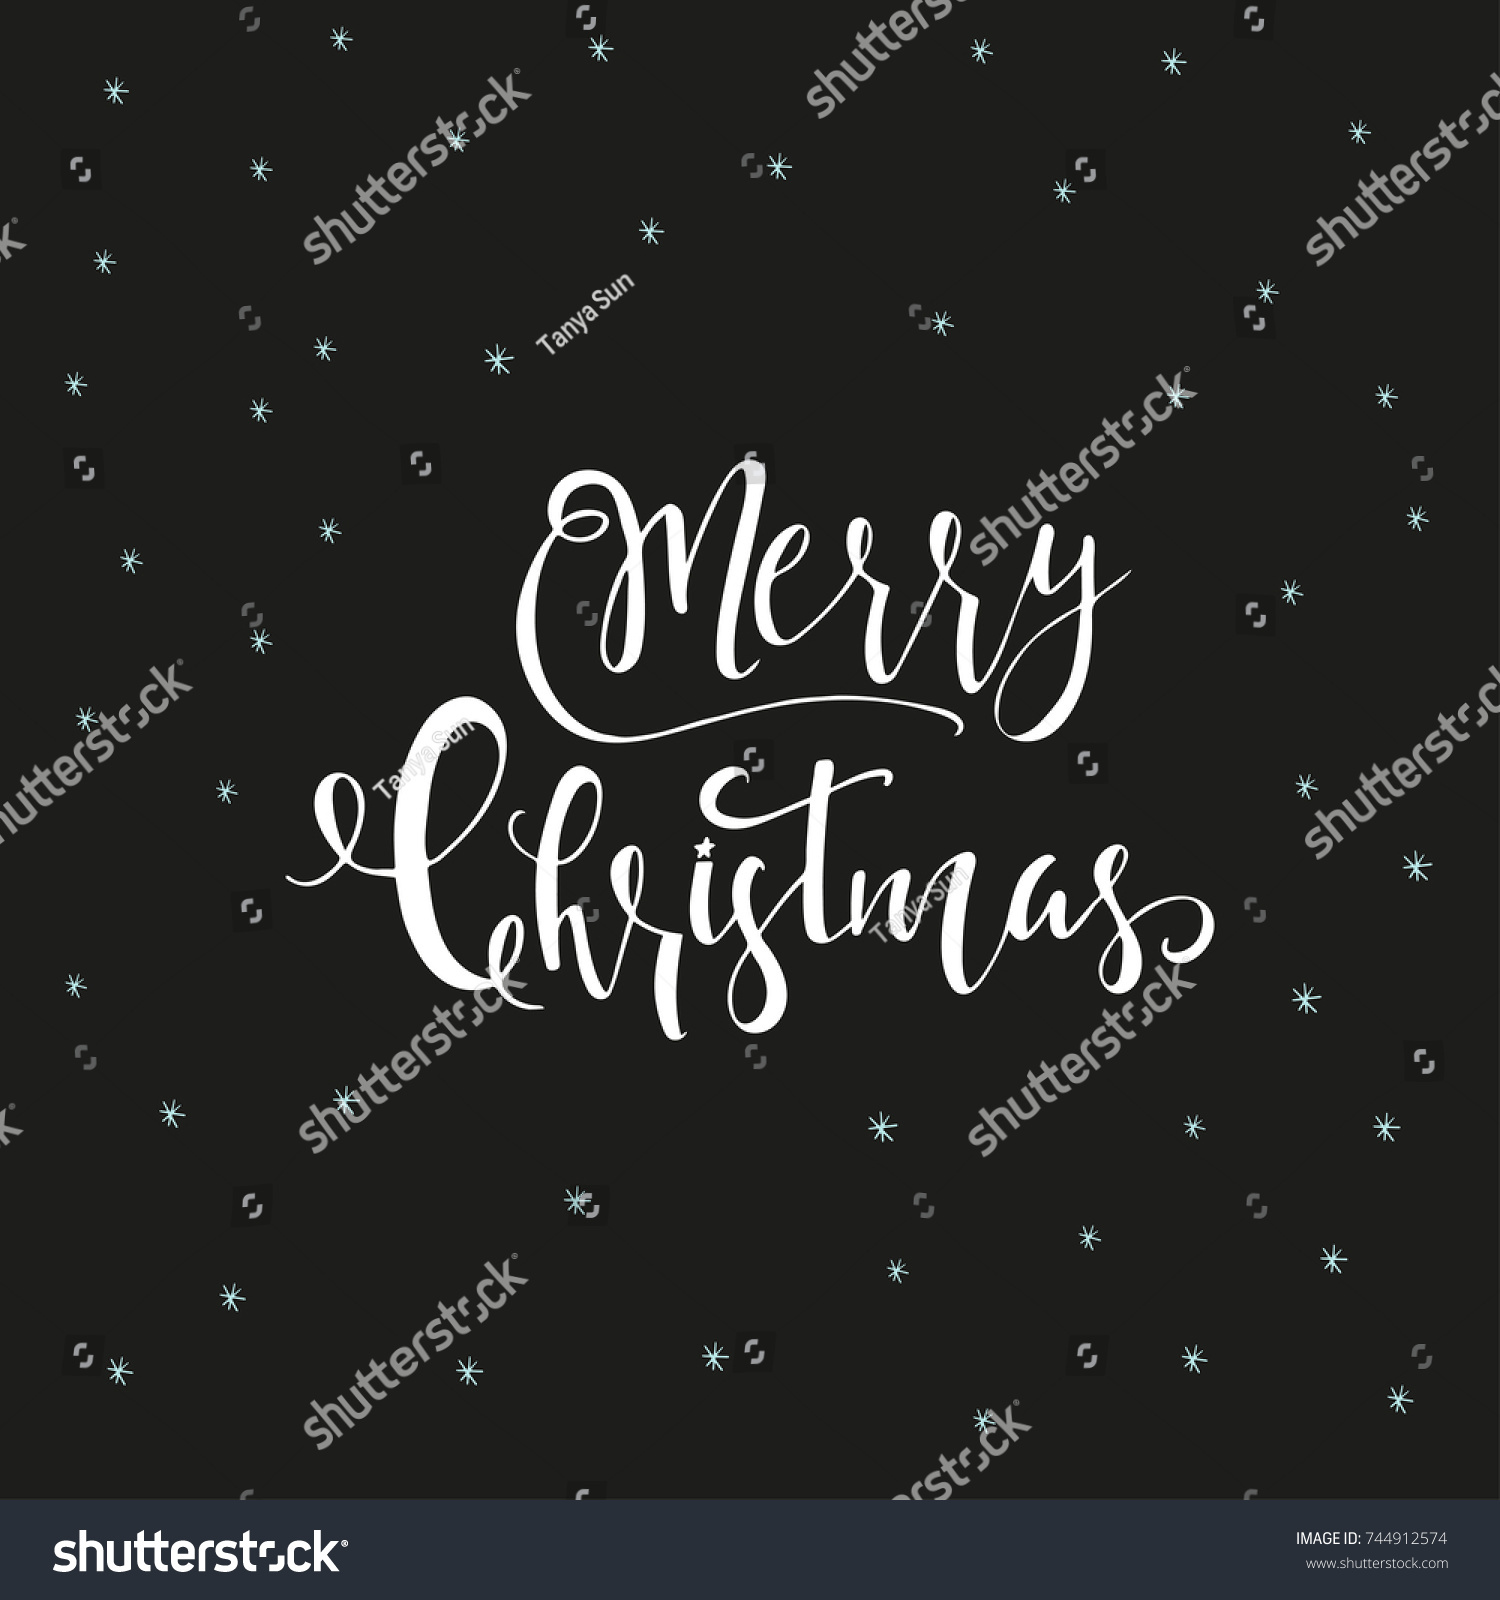 Wonderful Unique Handwritten Christmas Wishes Holiday Stock Vector